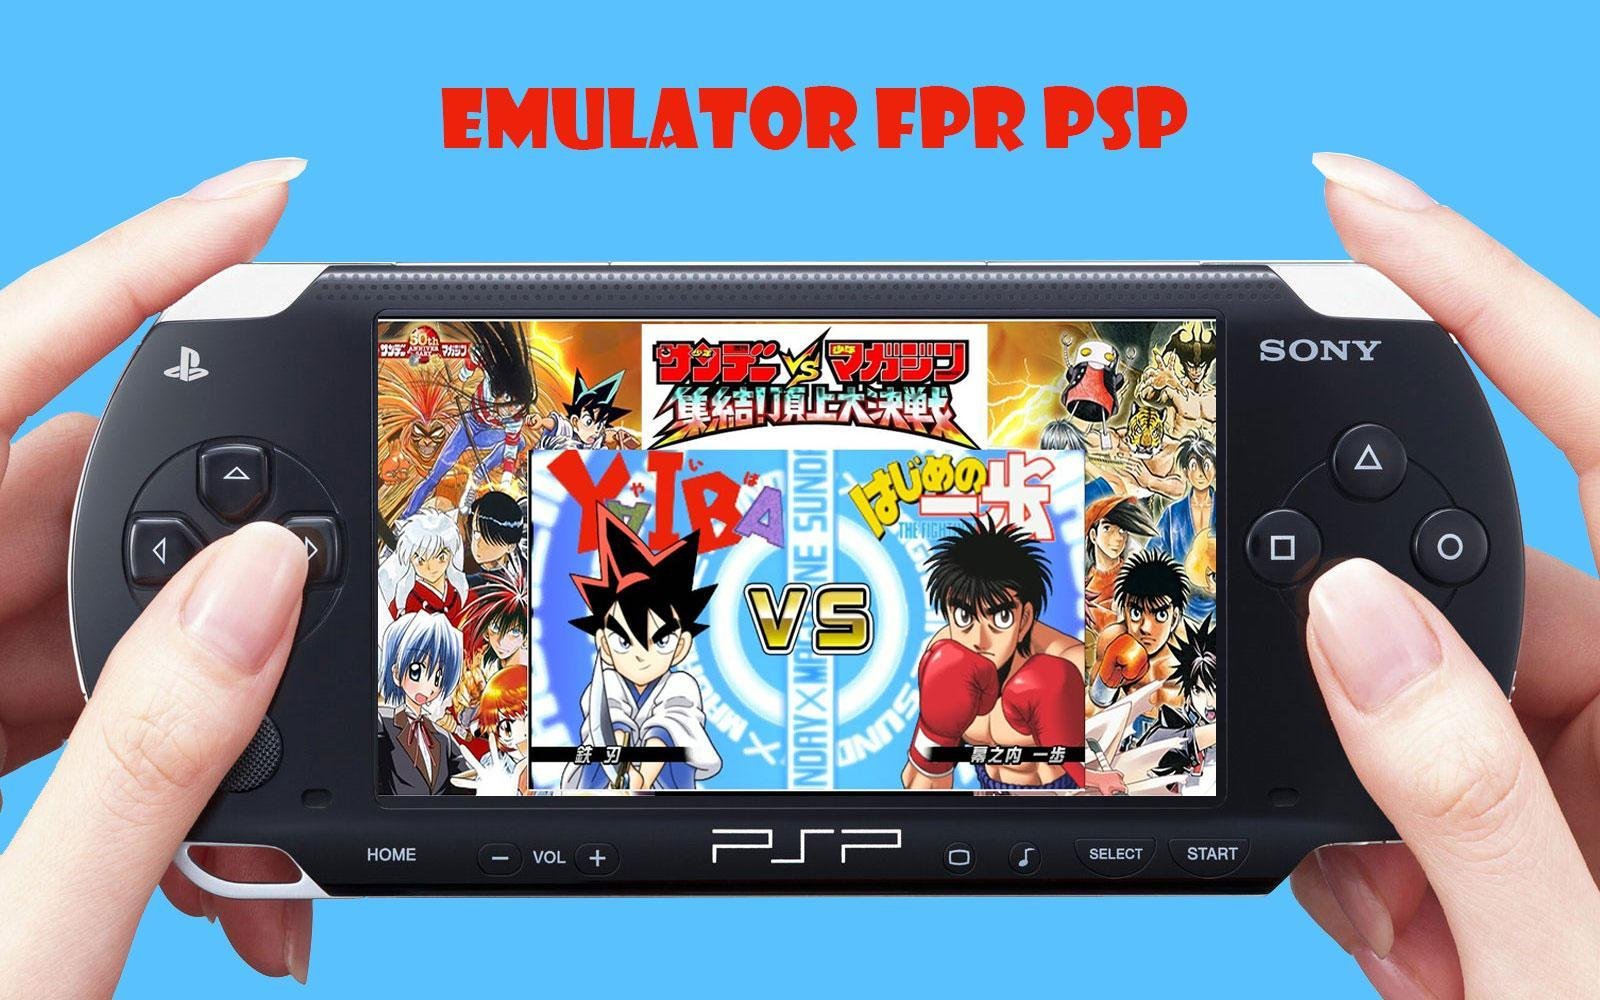 psp for android: psp 2018 simulator for Android - APK Download